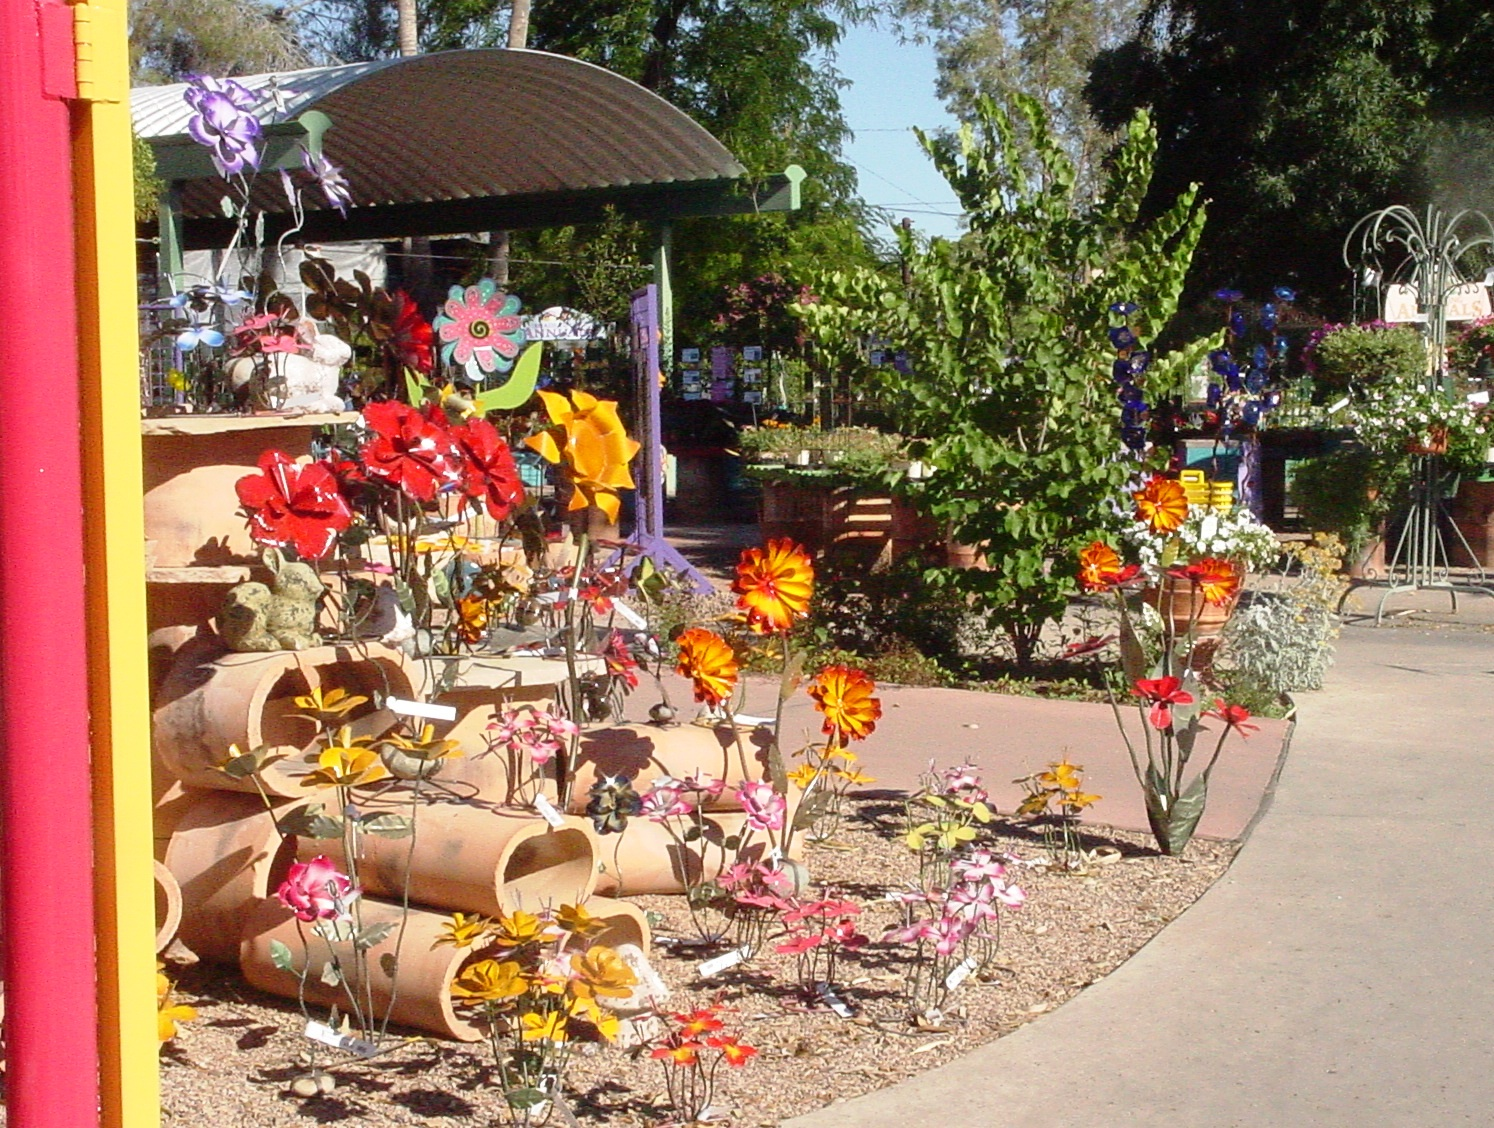 At The Entrance Of Harlow Gardens You Will Be Transported To Tucsonu0027s  Version Of Munchkinland   Brilliantly Colored, Oversized Blooming Flowers  Greet You.